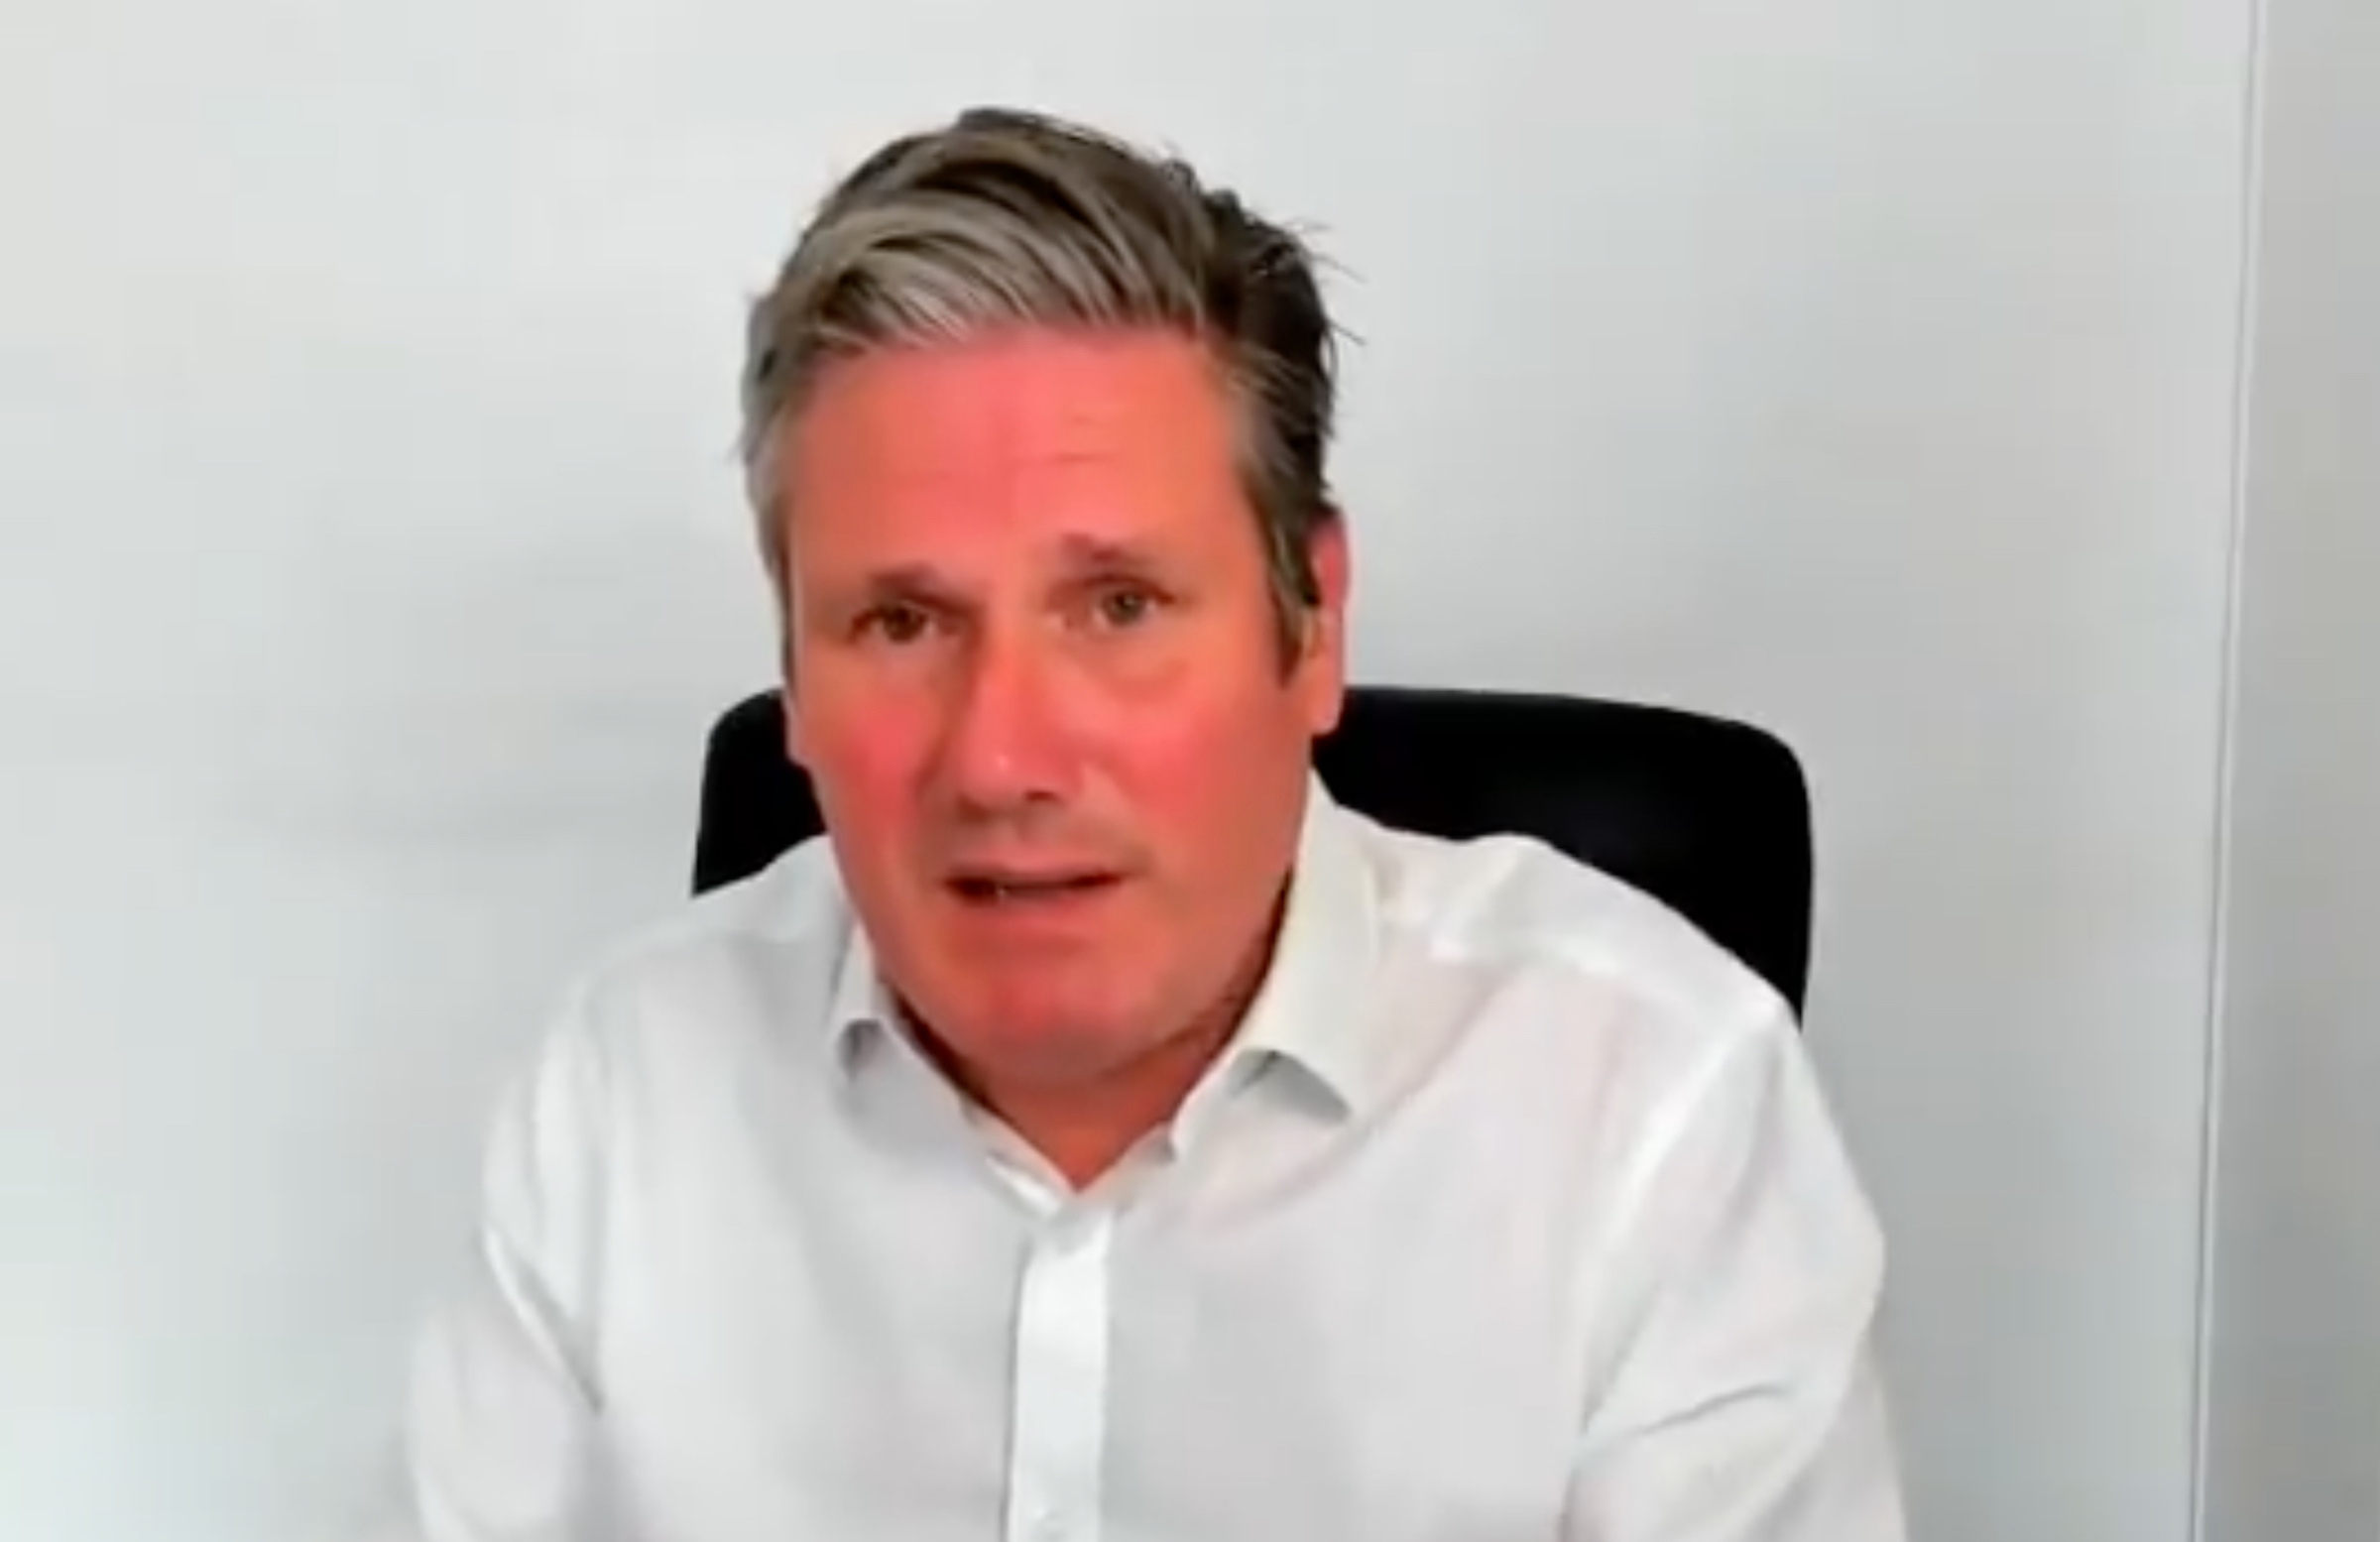 Keir Starmer, looking extremely red in the face during a BBC interview.